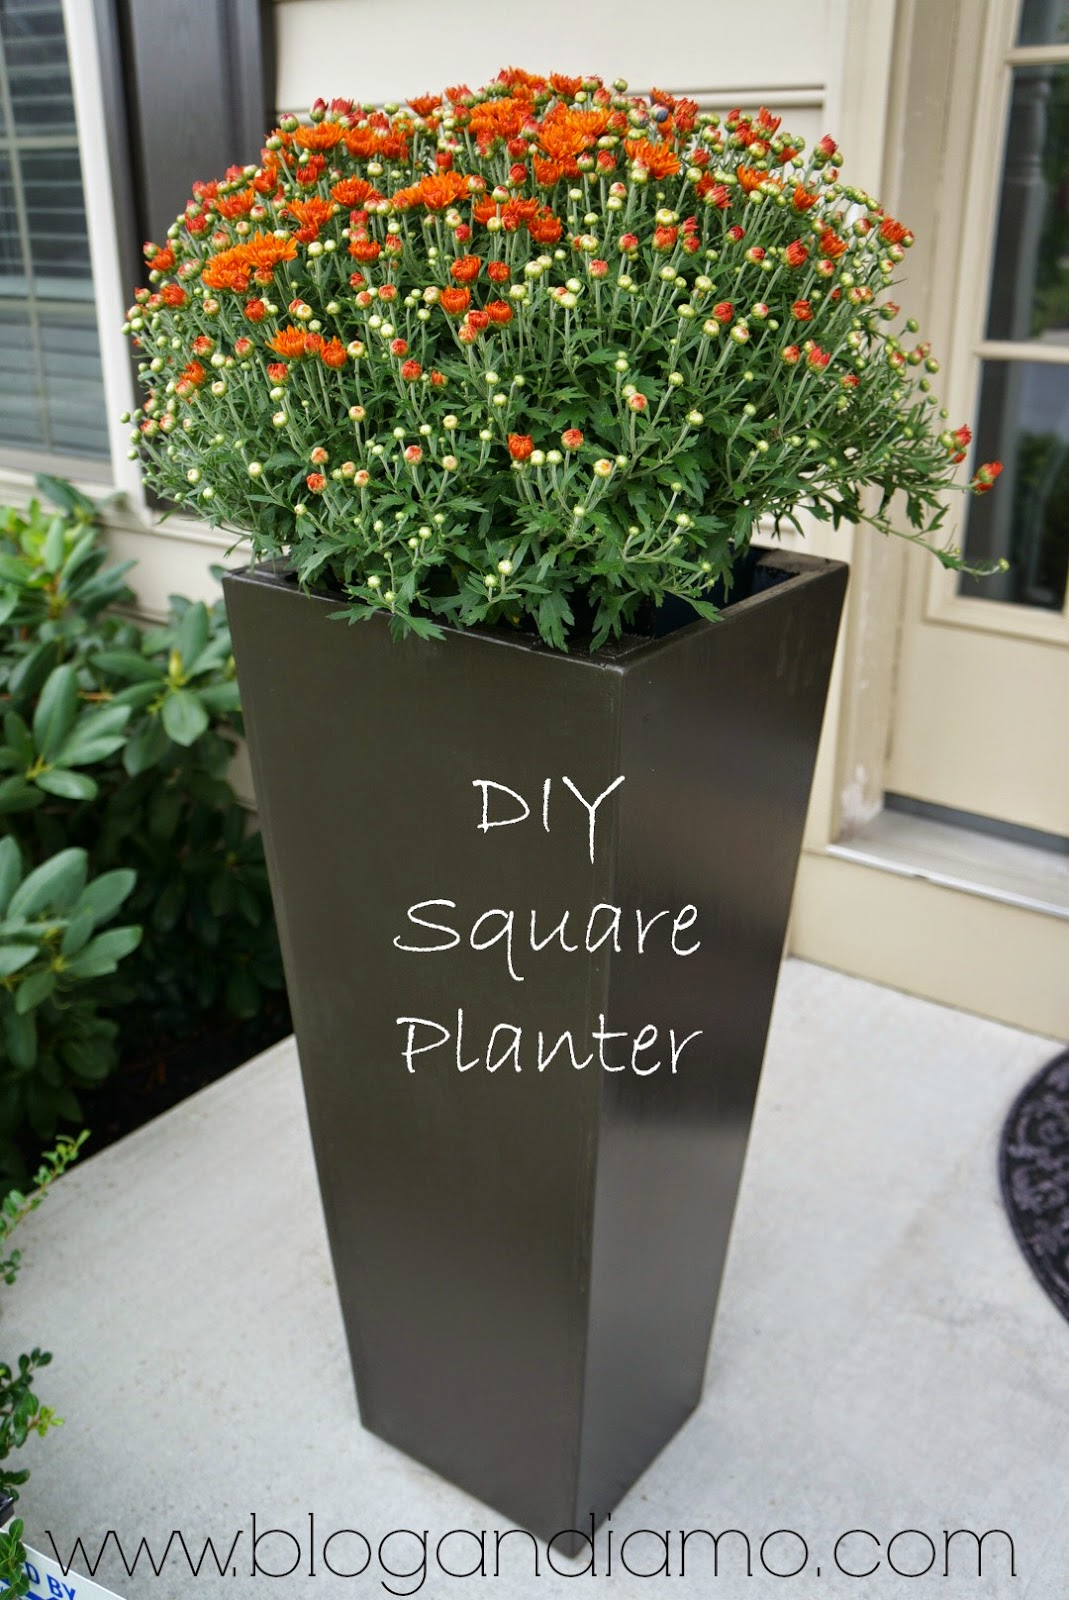 gallery cffbad patio ideas plastic fairfield hayneedle photo at fascinating planters tall mayne planter